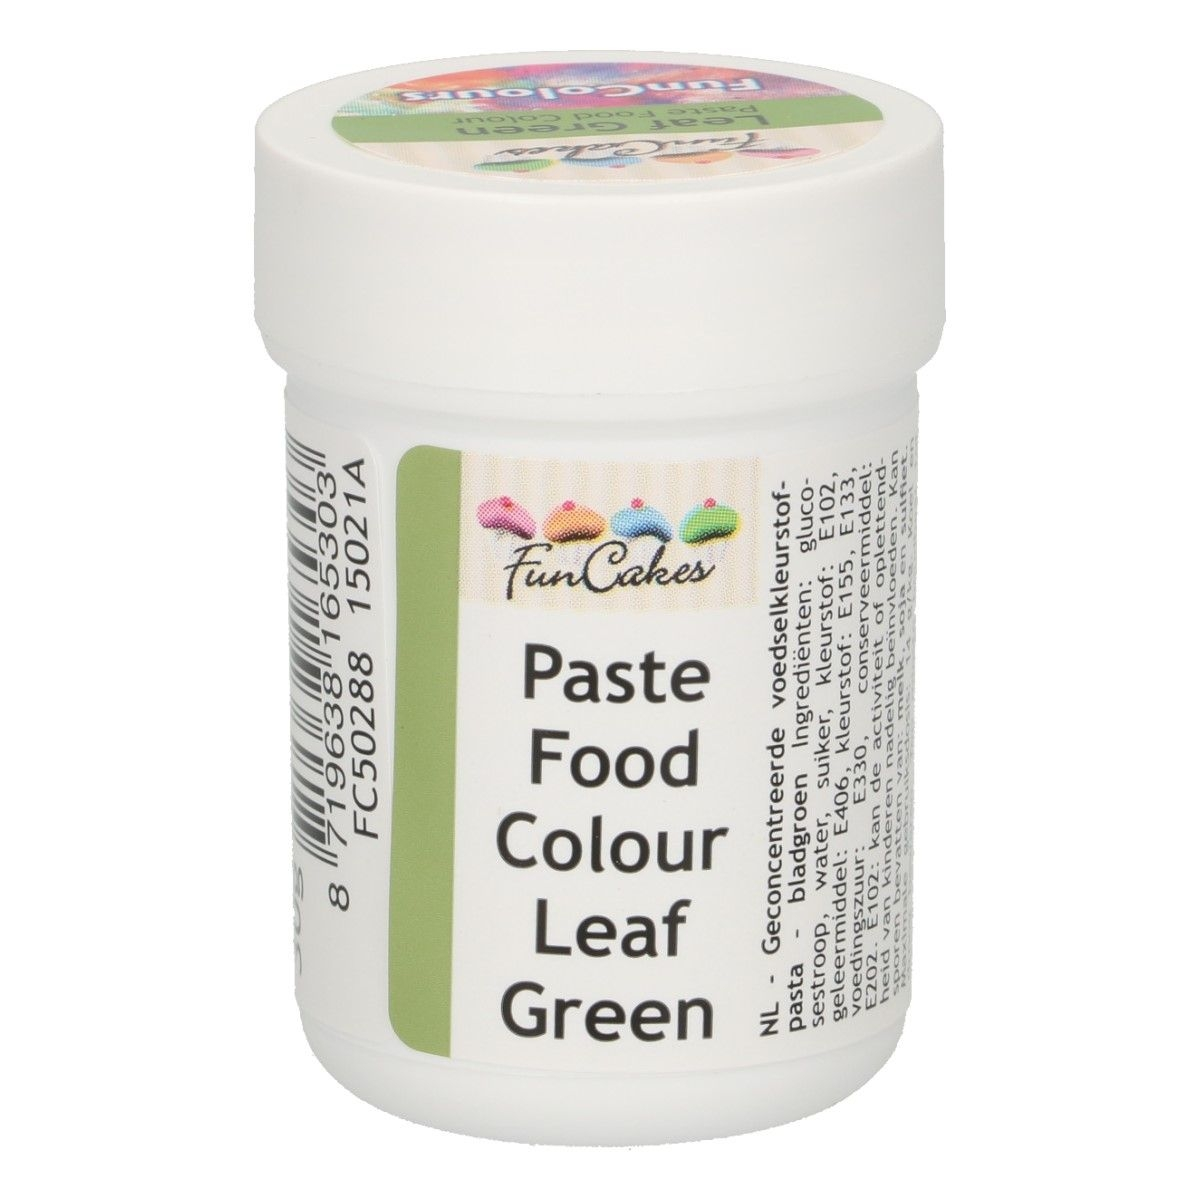 /f/u/funcakes_funcolours_paste_food_colour_-_leaf_green.jpg